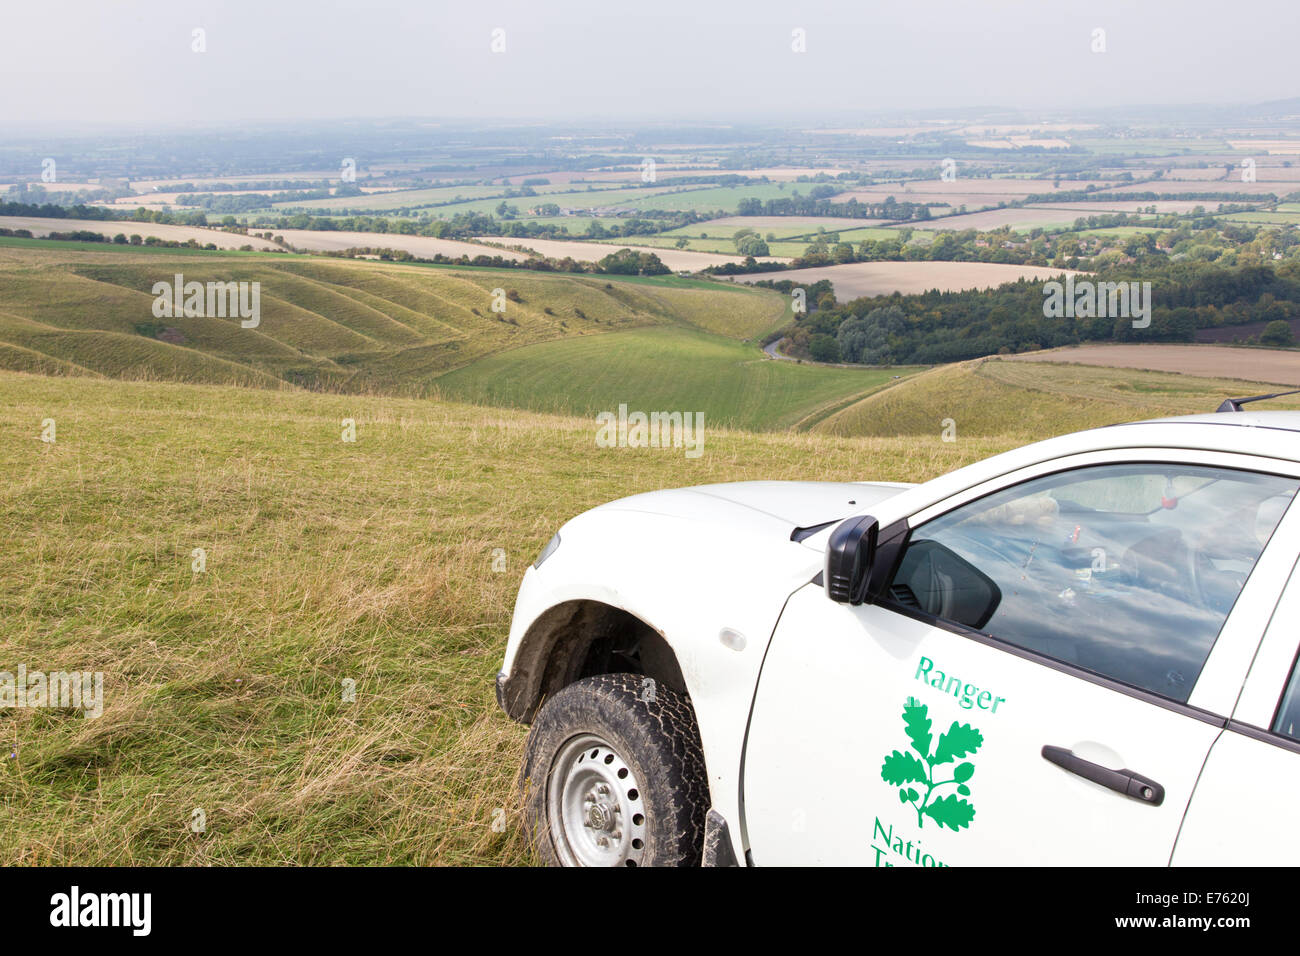 National Trust ranger's vehicle on White Horse Hill and the distant Giant's Steps, Wiltshire, England, UK Stock Photo